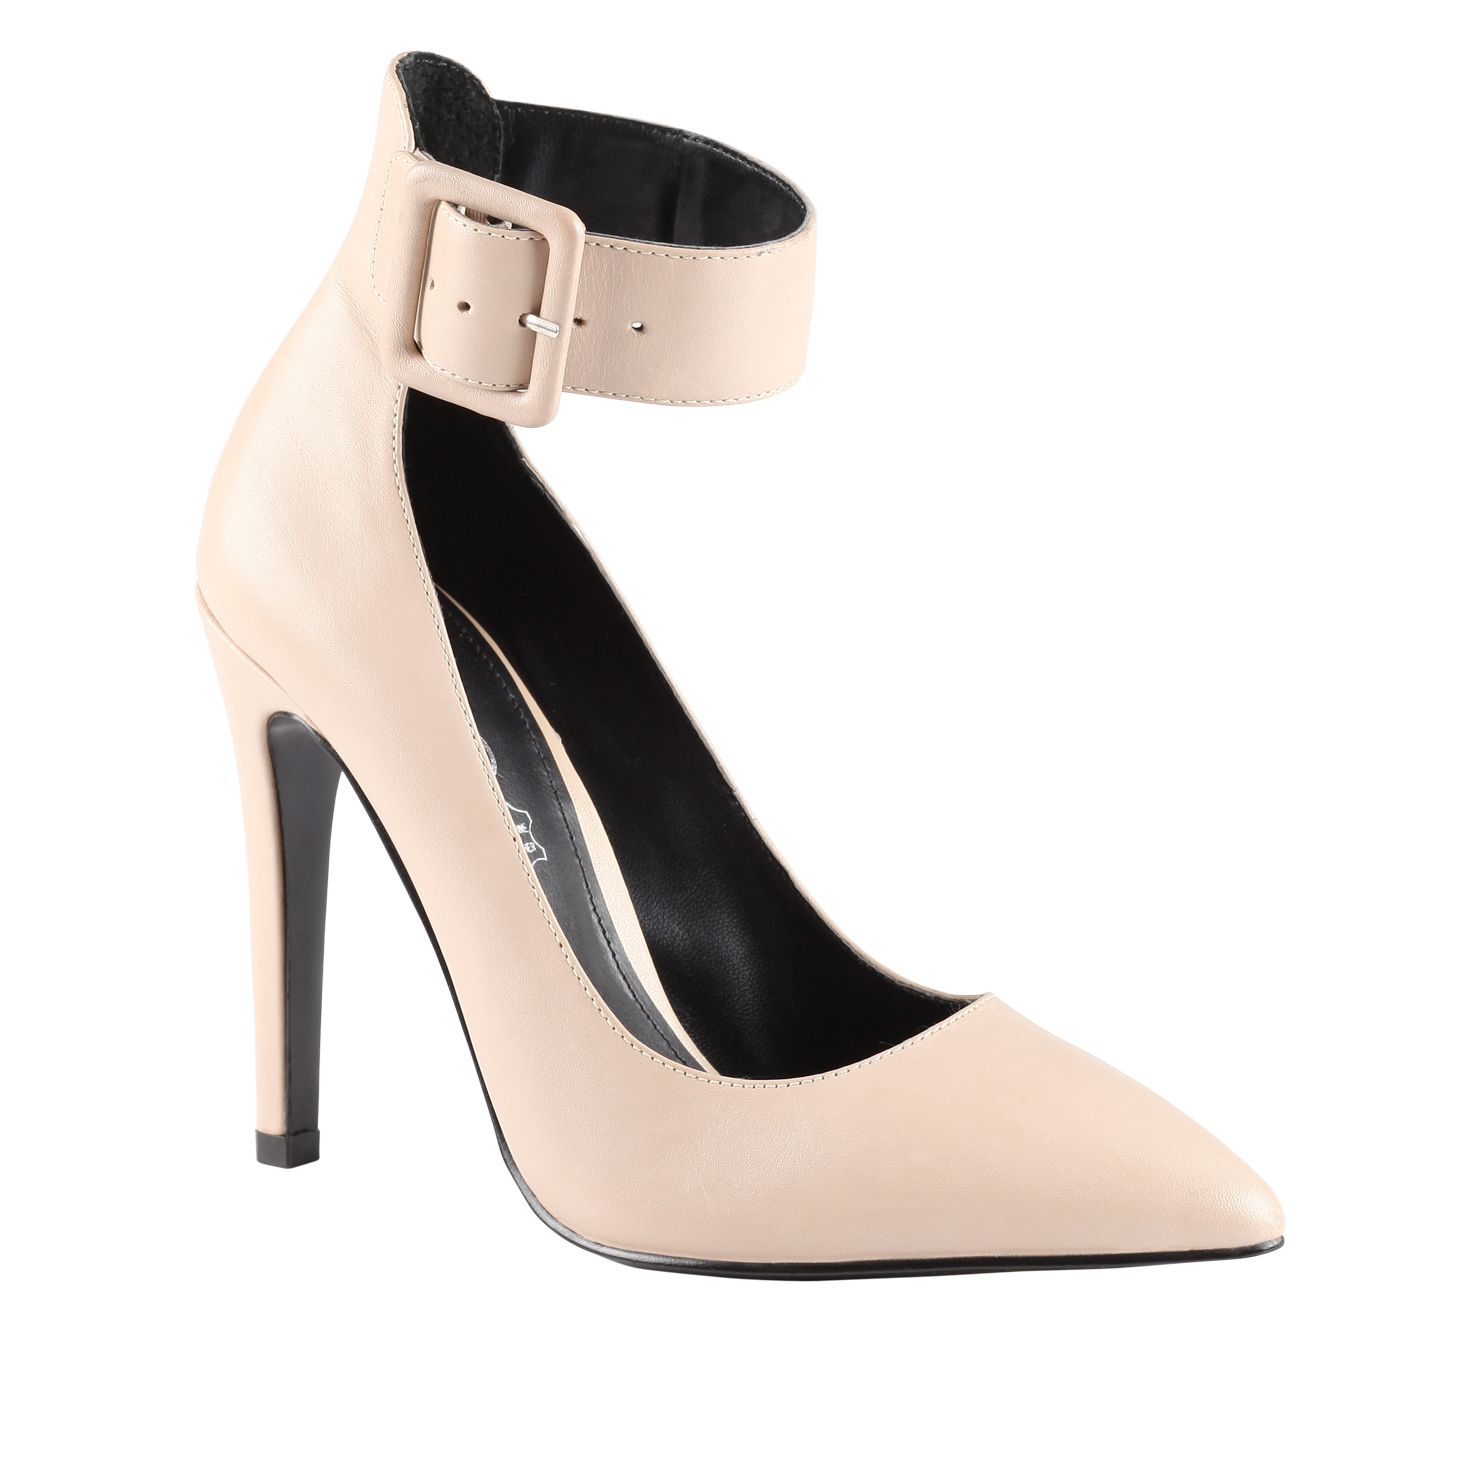 Kessie pointed toe stilleto court shoes